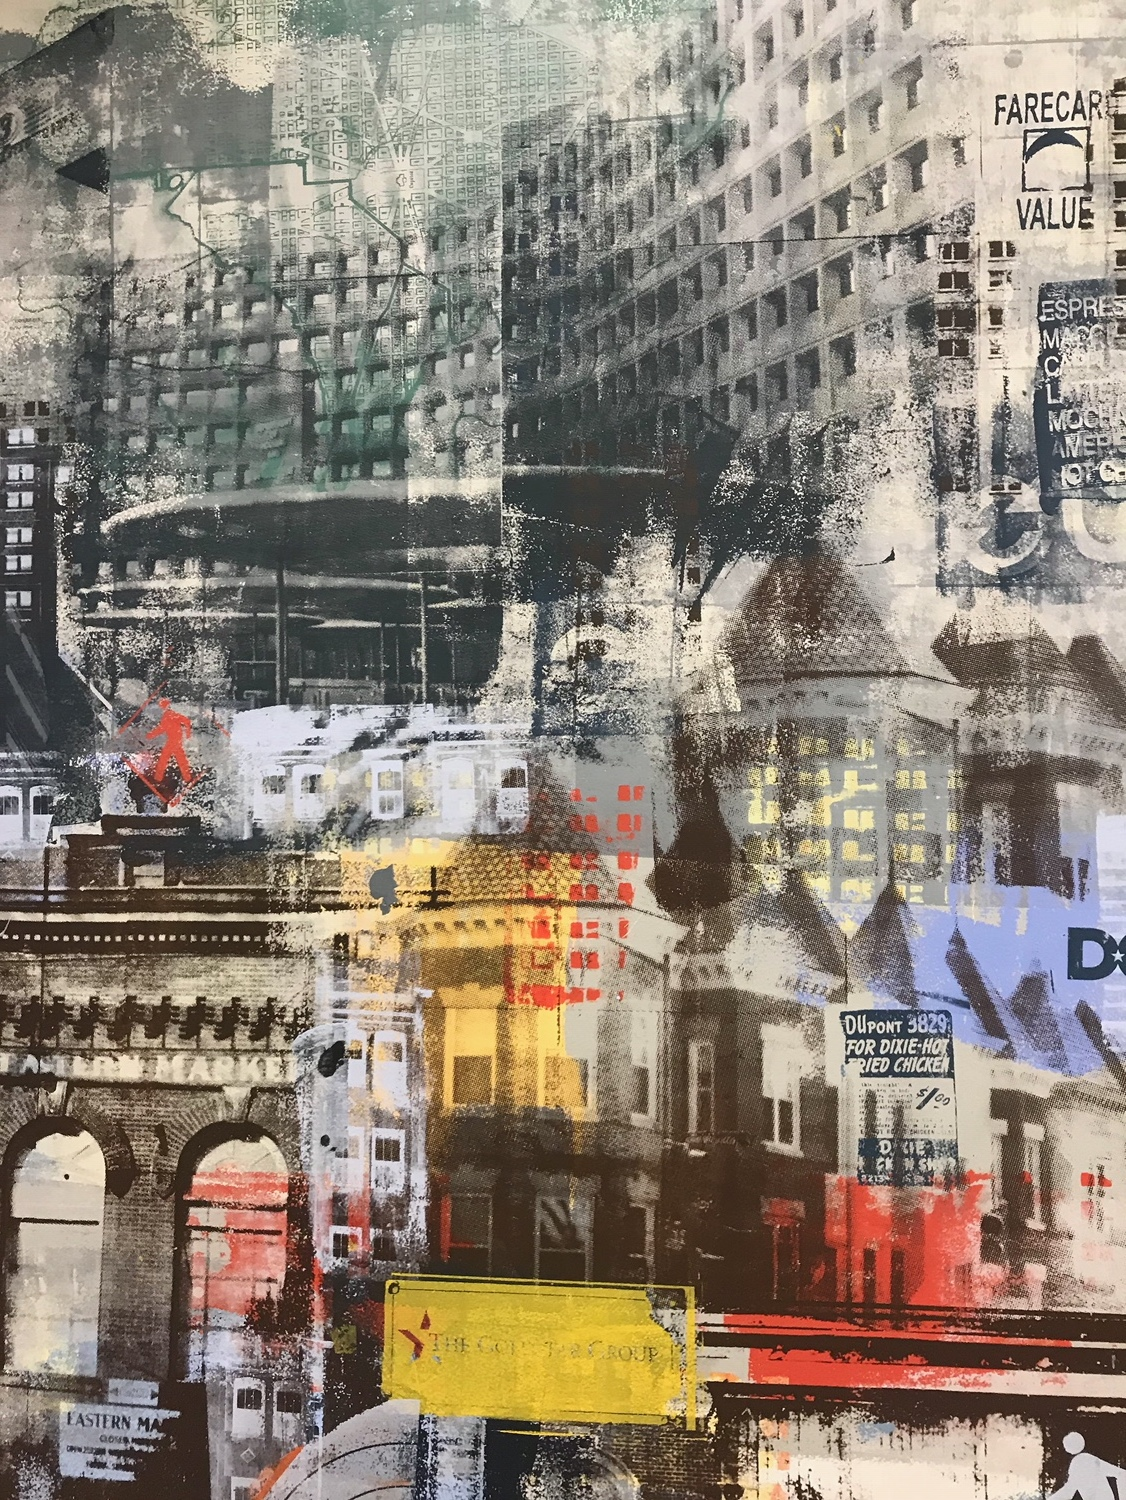 We are DROOLING over the detail & texture here! A 20th century map of DC layered underneath a photograph of the client's new office in Bethesda, all sealed underneath The Goldstar Group's logo?! Yes, please!